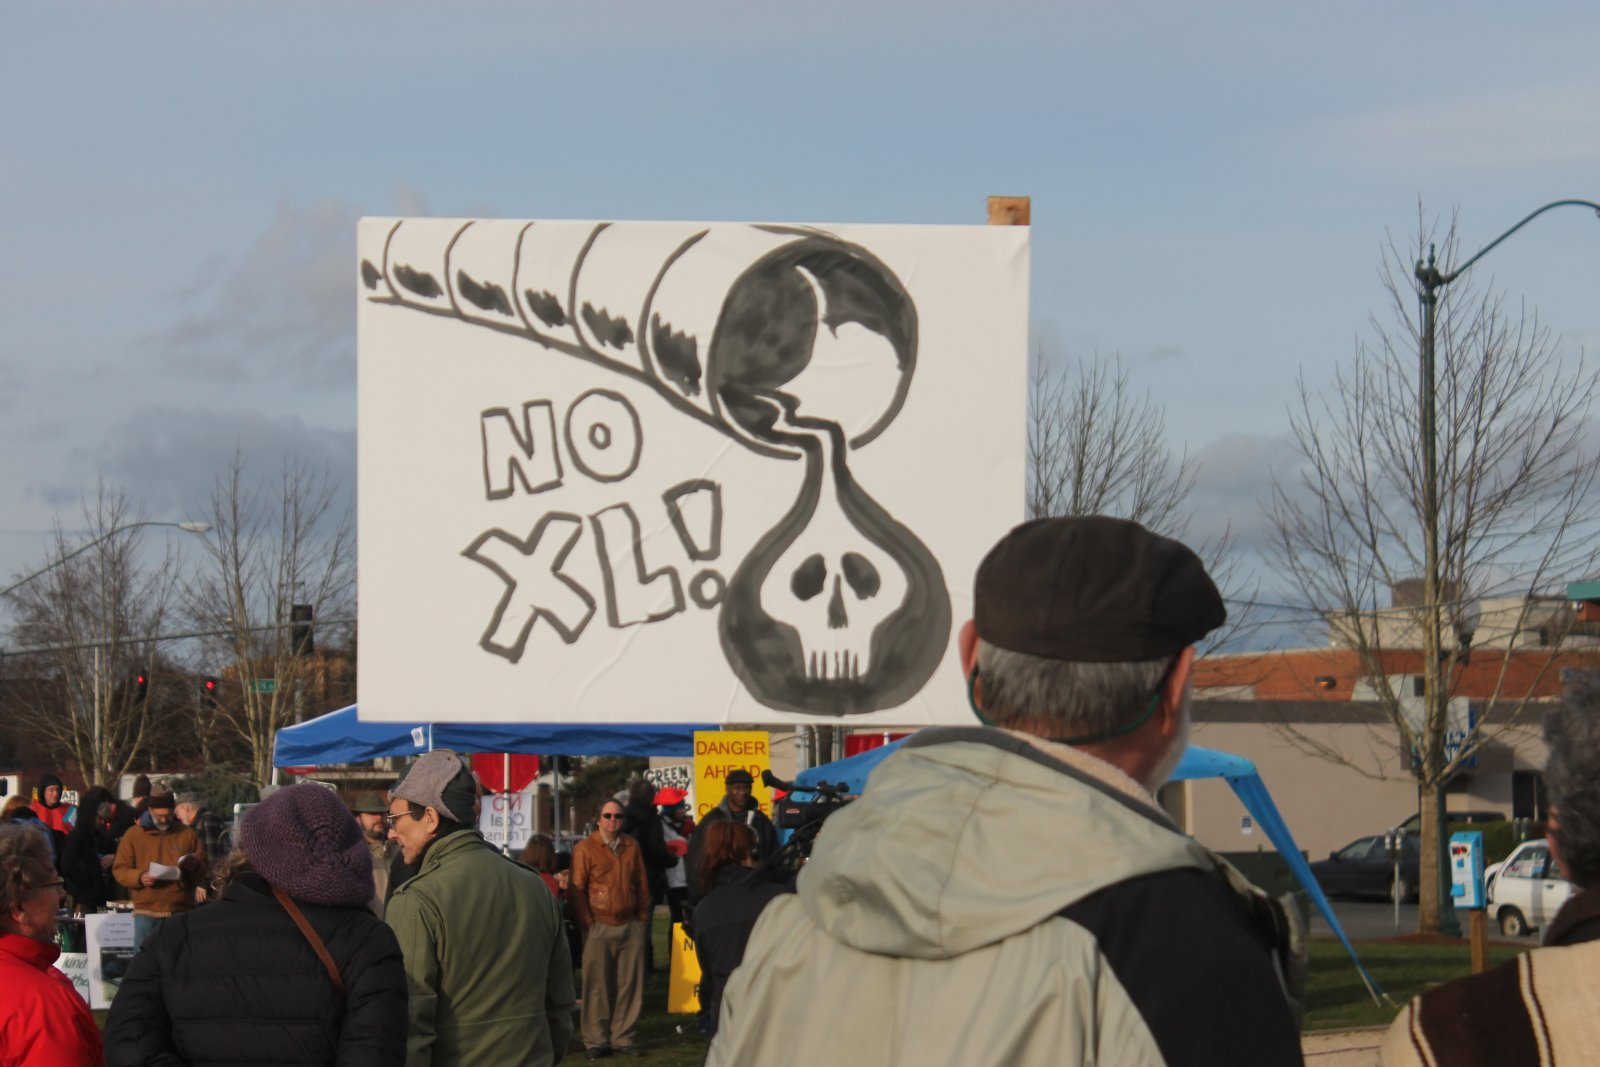 Protests against tar sands pipelines like Keystone XL have cost Canadian producers